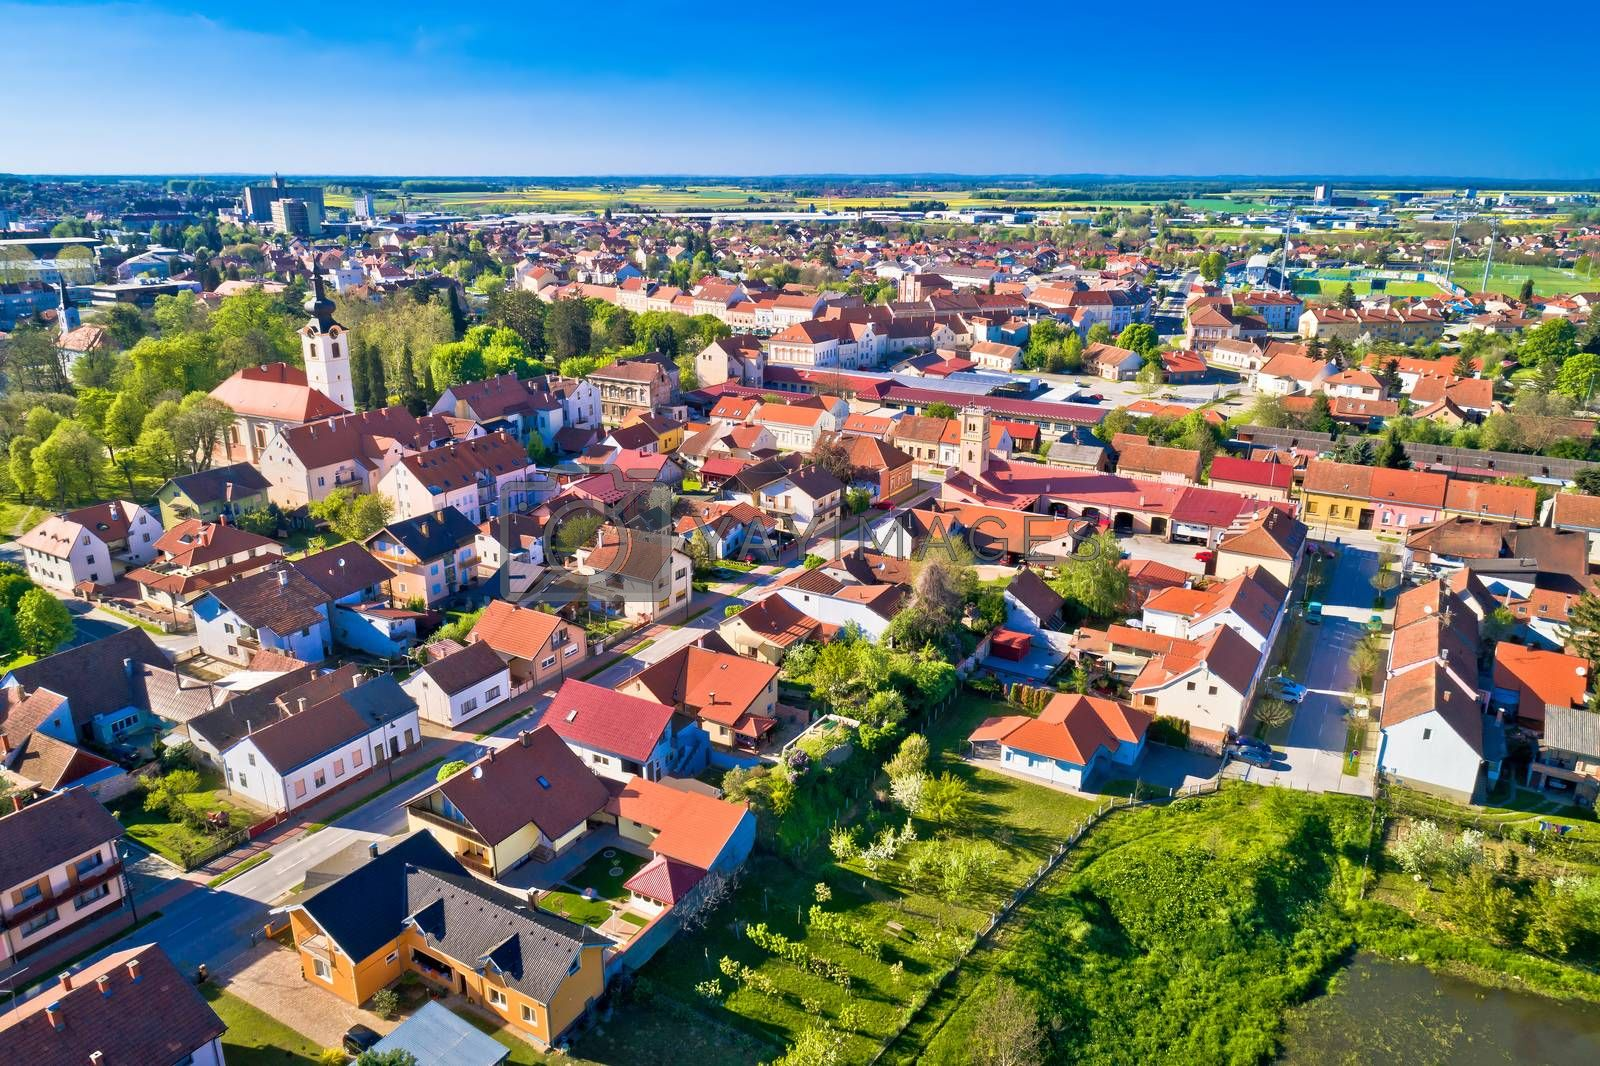 Town of Koprivnica green landscape aerial view, Podravina region of Croatia